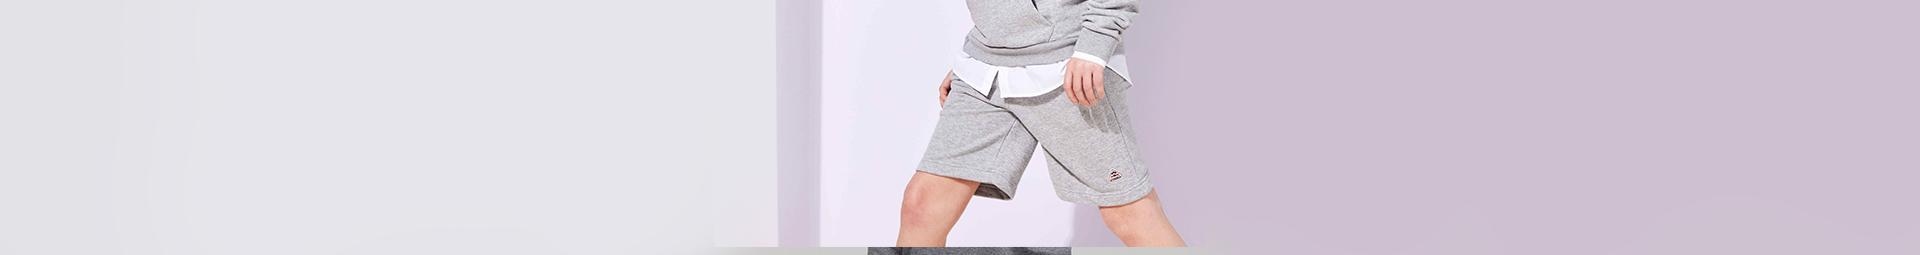 Kids shorts, optimal comfort, at the beach or in the mountains | Pyrenex